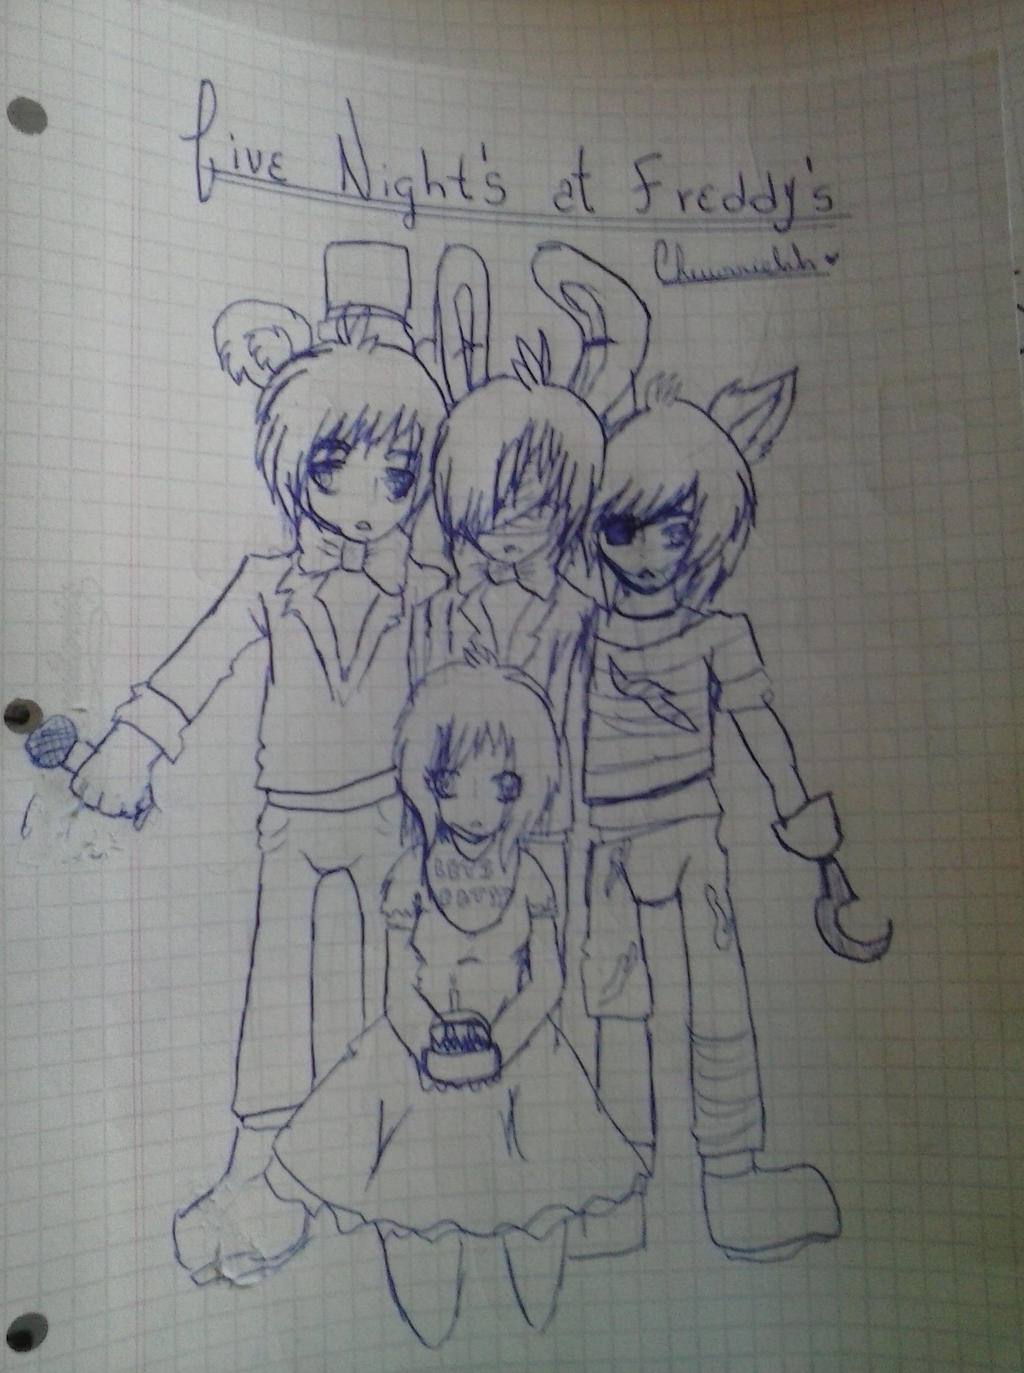 Five nights at freddys anime human ver by chewrriehh on